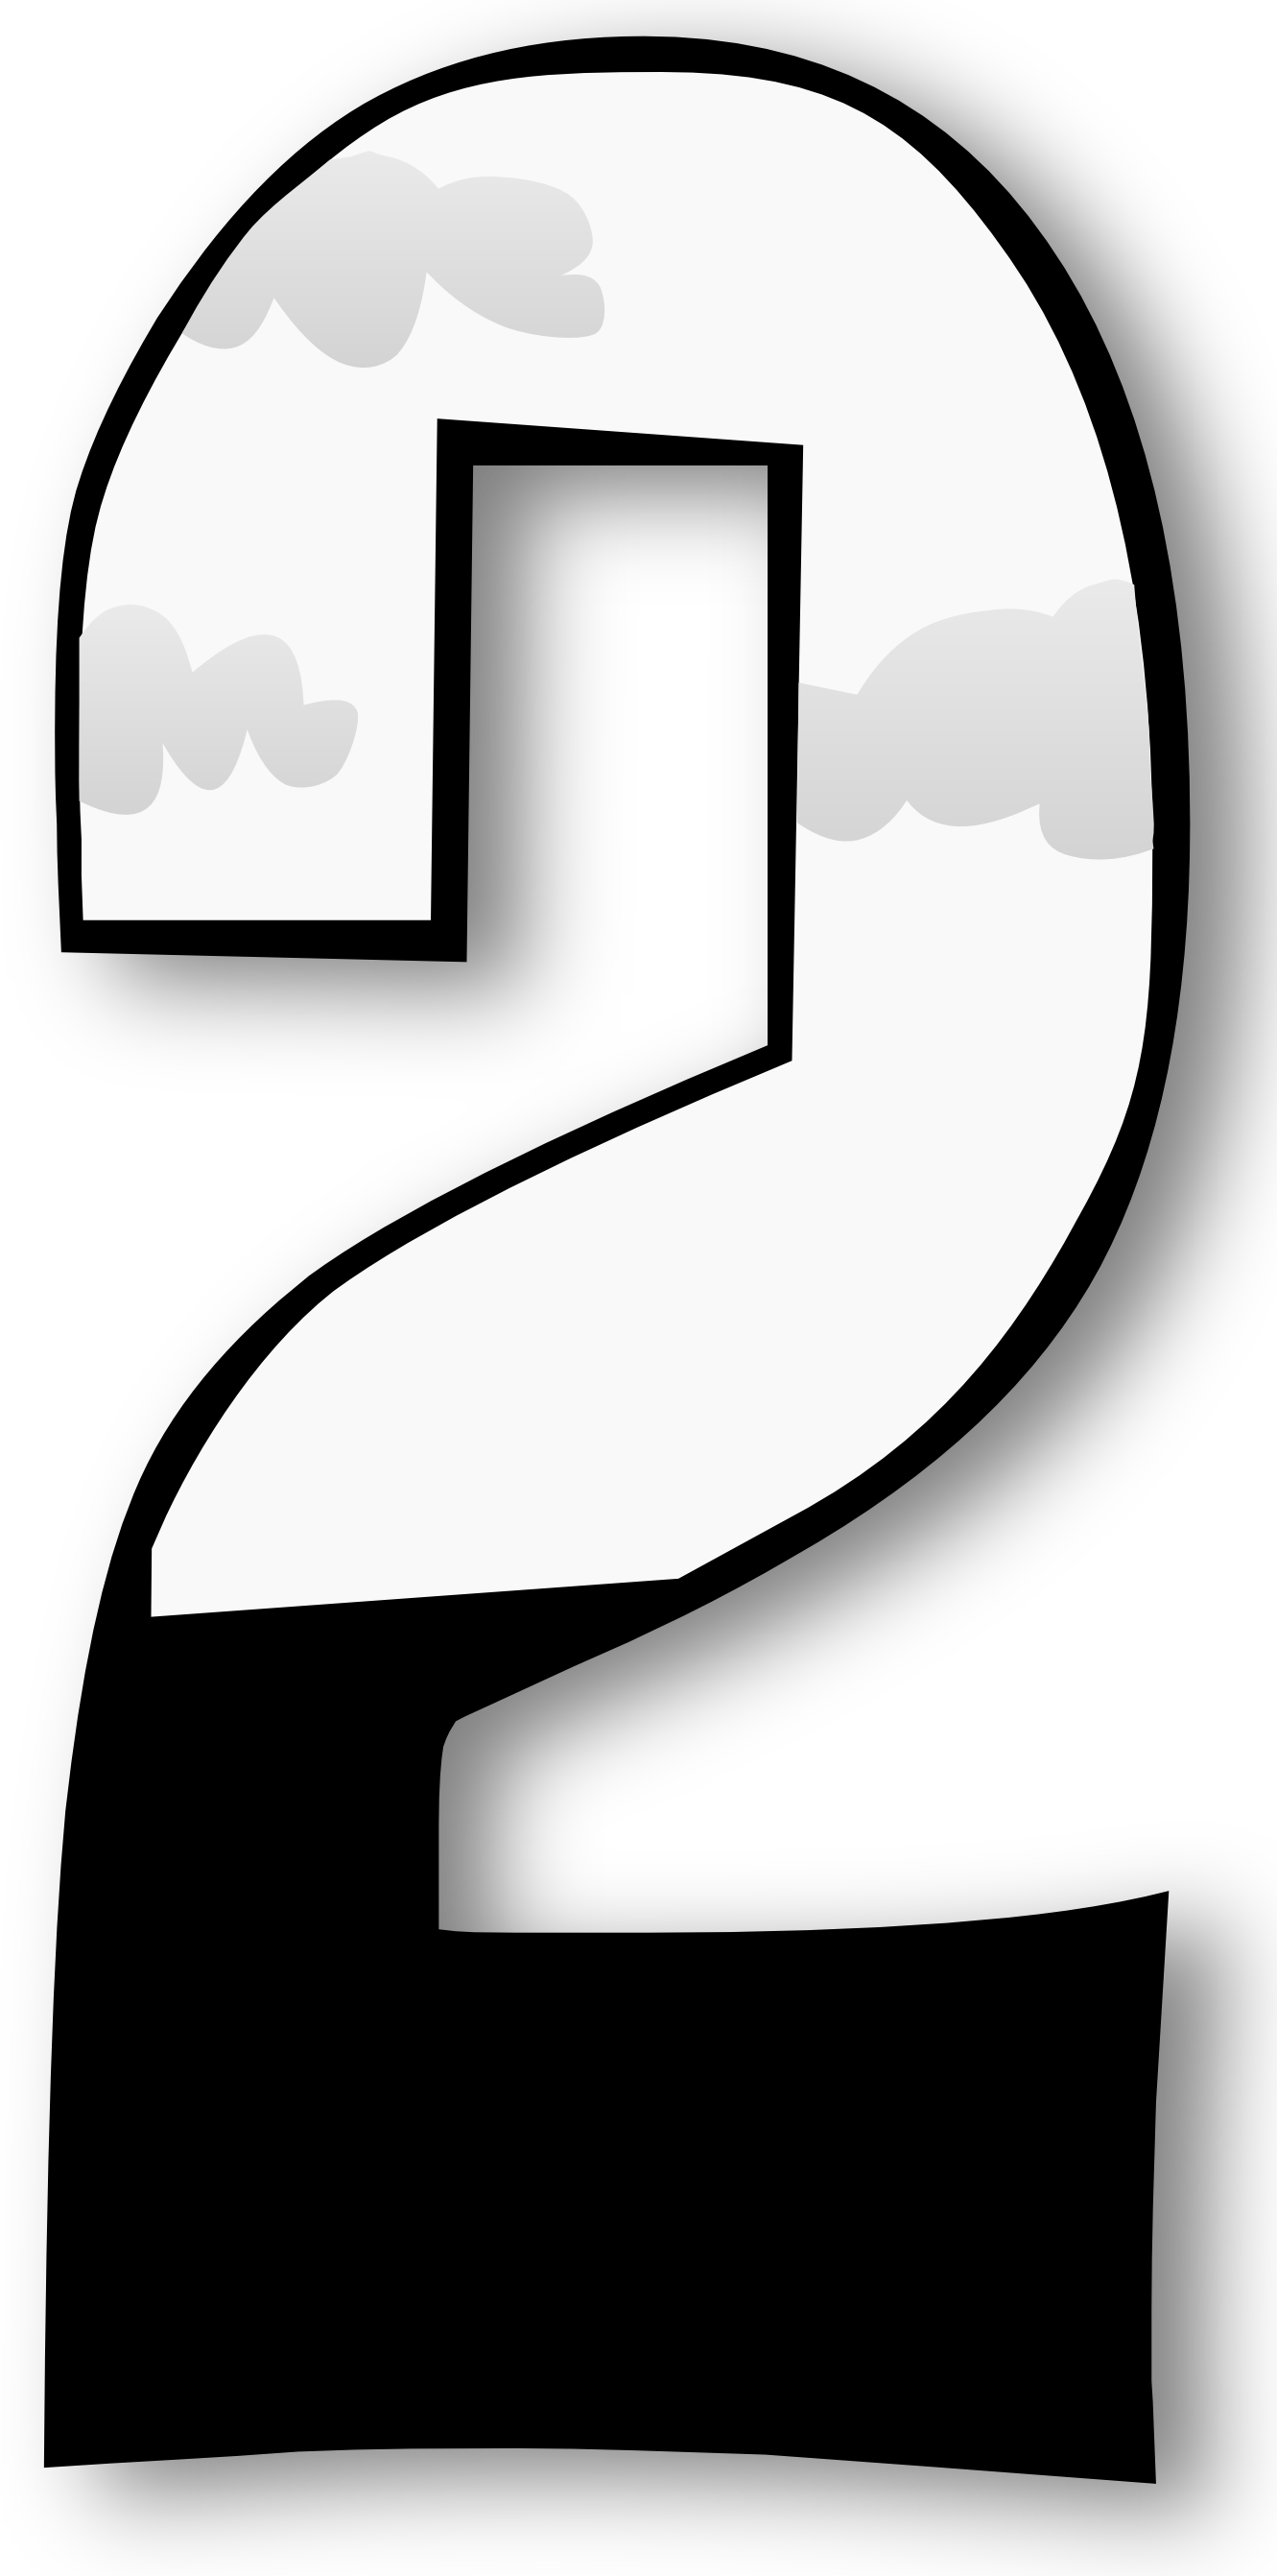 collection of black. Number 1 clipart outline